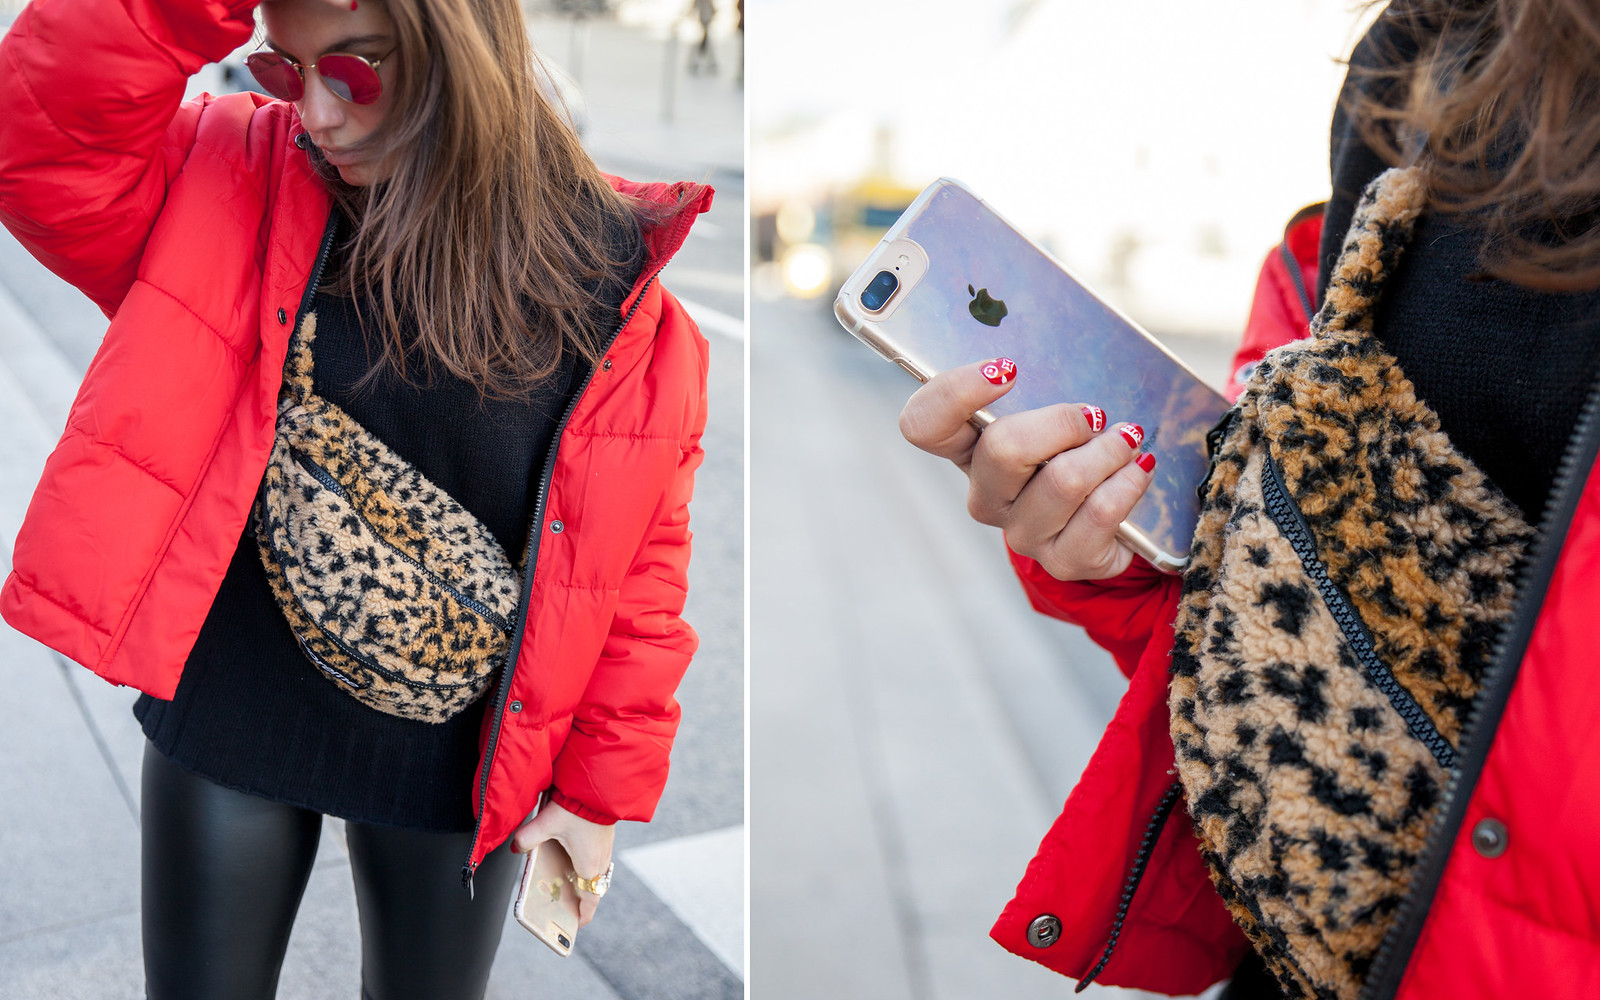 laura santolaria theguestgirl influencer madrid red coat Supreme bag tendencia riñonera de Superme NY fashionweeks